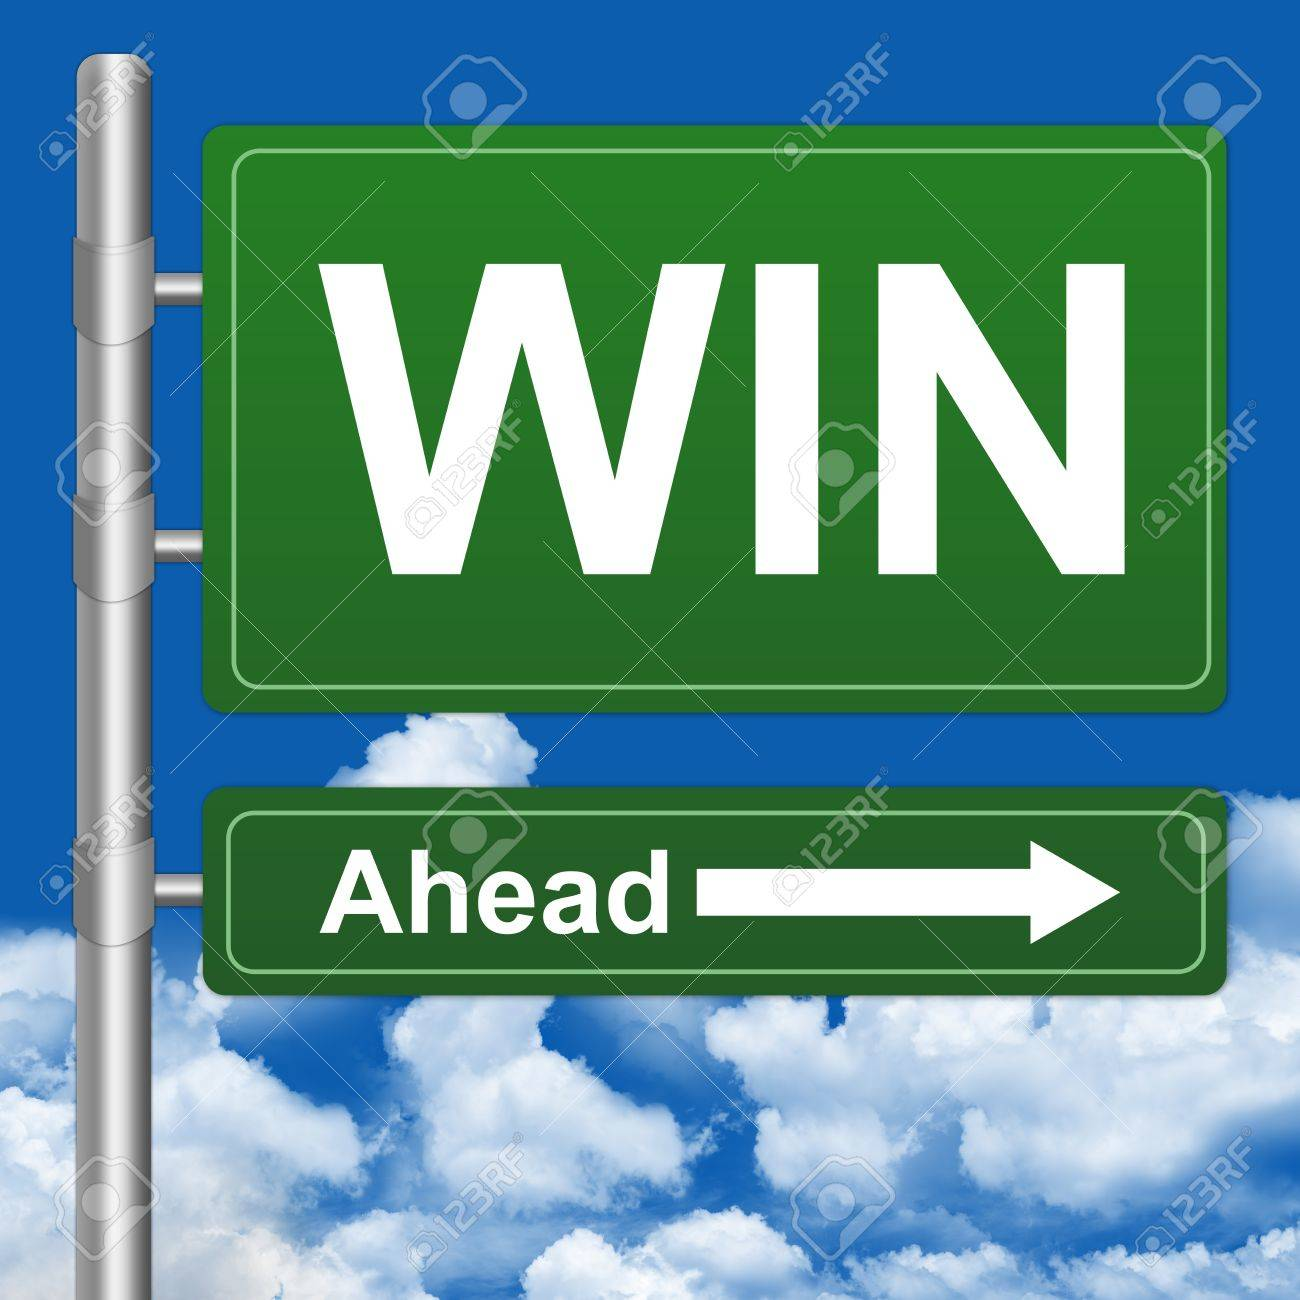 Stock Photo  Win Ahead Highway Street Sign on Blue Sky Background Stock Photo - 14670860